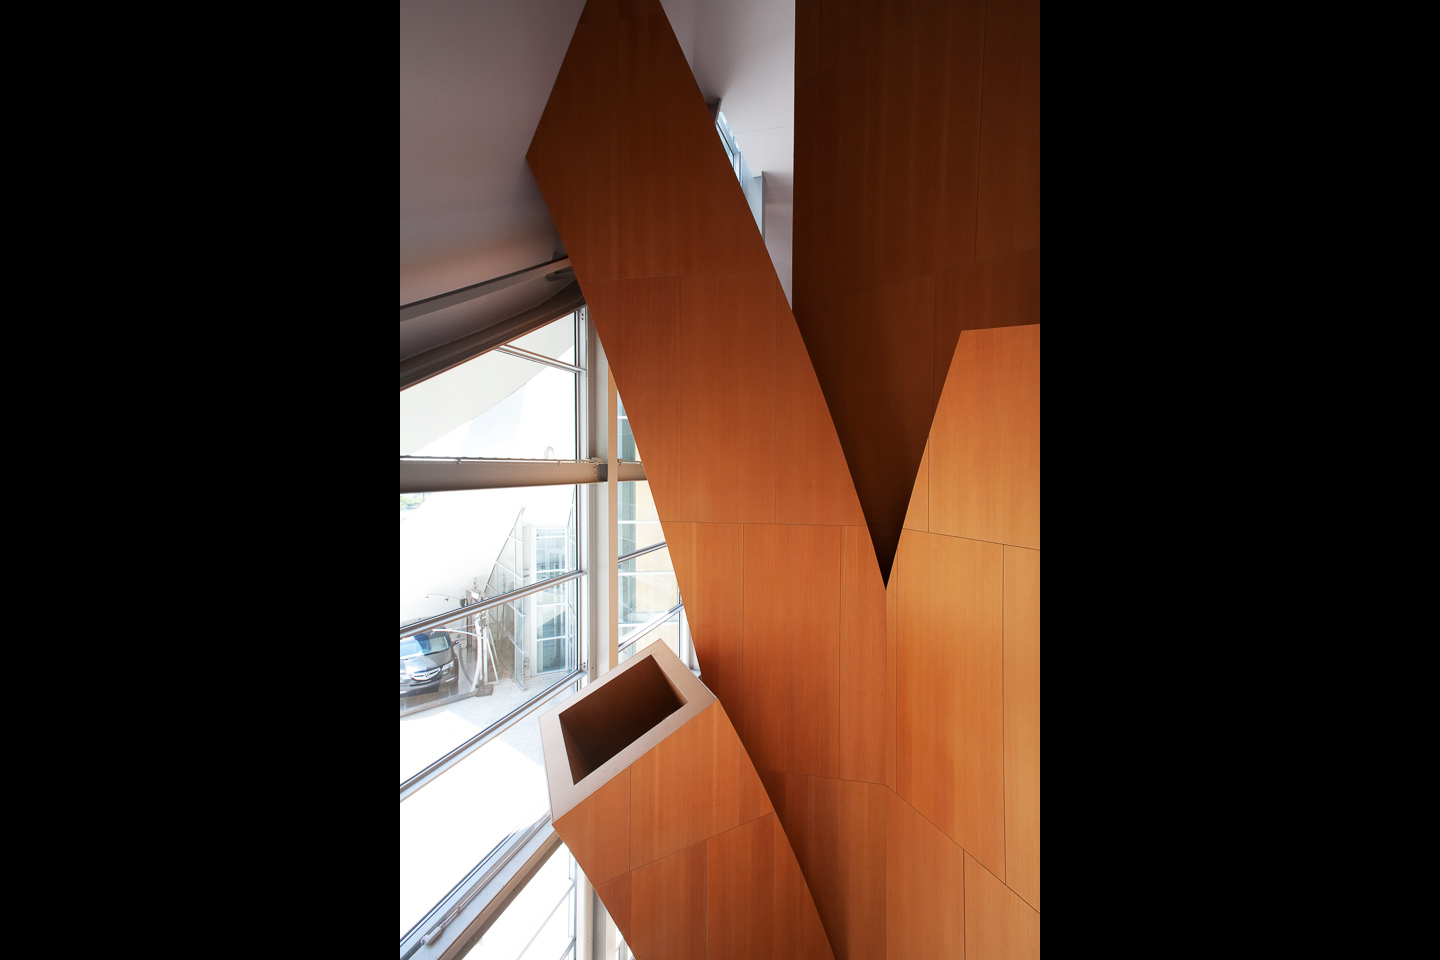 hollow tree-like wooden columns conceal hvac and wiring at the Walt Disney Concert Hall, photographed by Jacob Rosenfeld